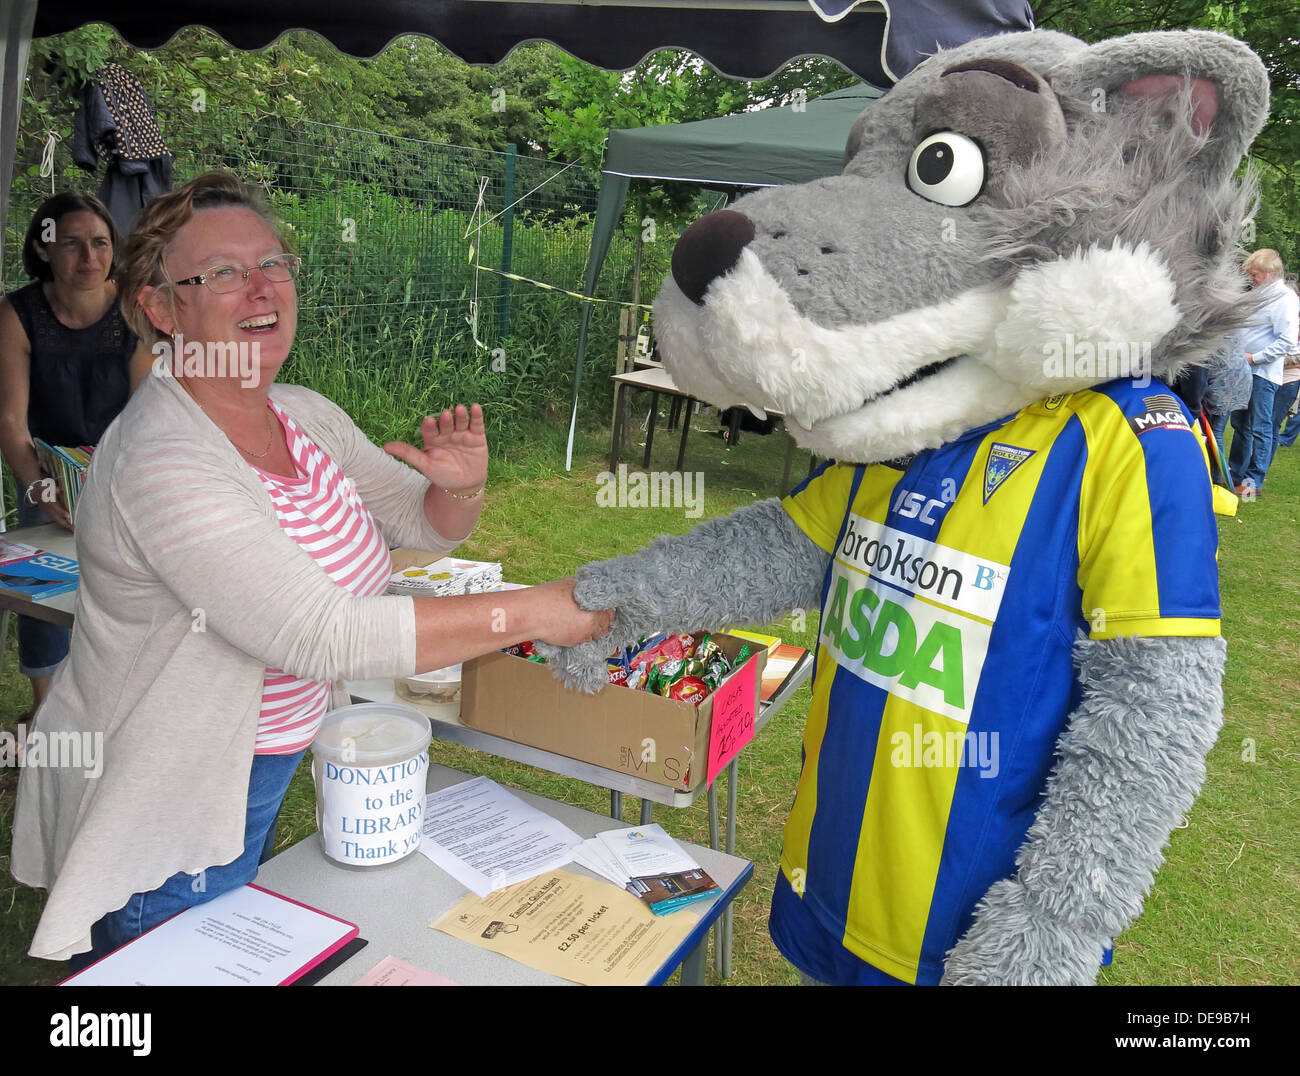 Rugby,Warrington,Wolves,Wolves Mascot,Wolfie,Grappenhall,Walking Day,walking days,walking,days,day,Community Library,community,library,stall,Warrington,Cheshire,England,UK,GB,Great Britain,furry,puppet,sport,sports,wires,GoTonySmith,Warringtonians,Buy Pictures of,Buy Images Of